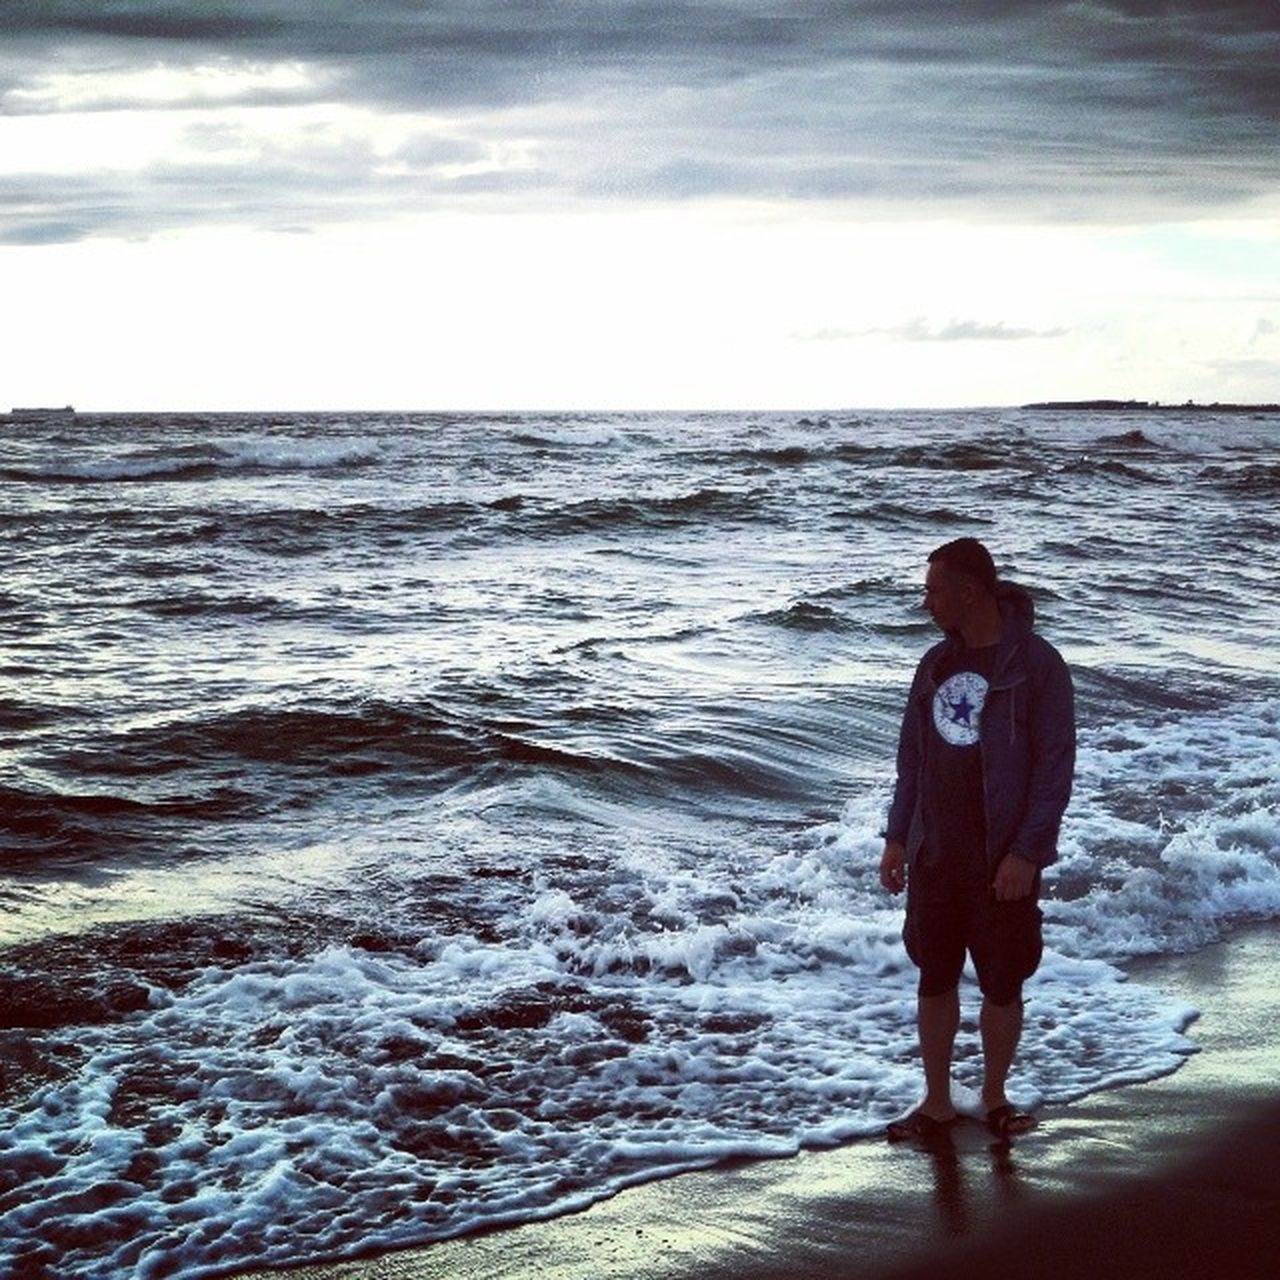 sea, full length, water, real people, one person, horizon over water, standing, sky, nature, beach, men, scenics, wave, beauty in nature, rear view, tranquil scene, lifestyles, cloud - sky, outdoors, day, ankle deep in water, adult, people